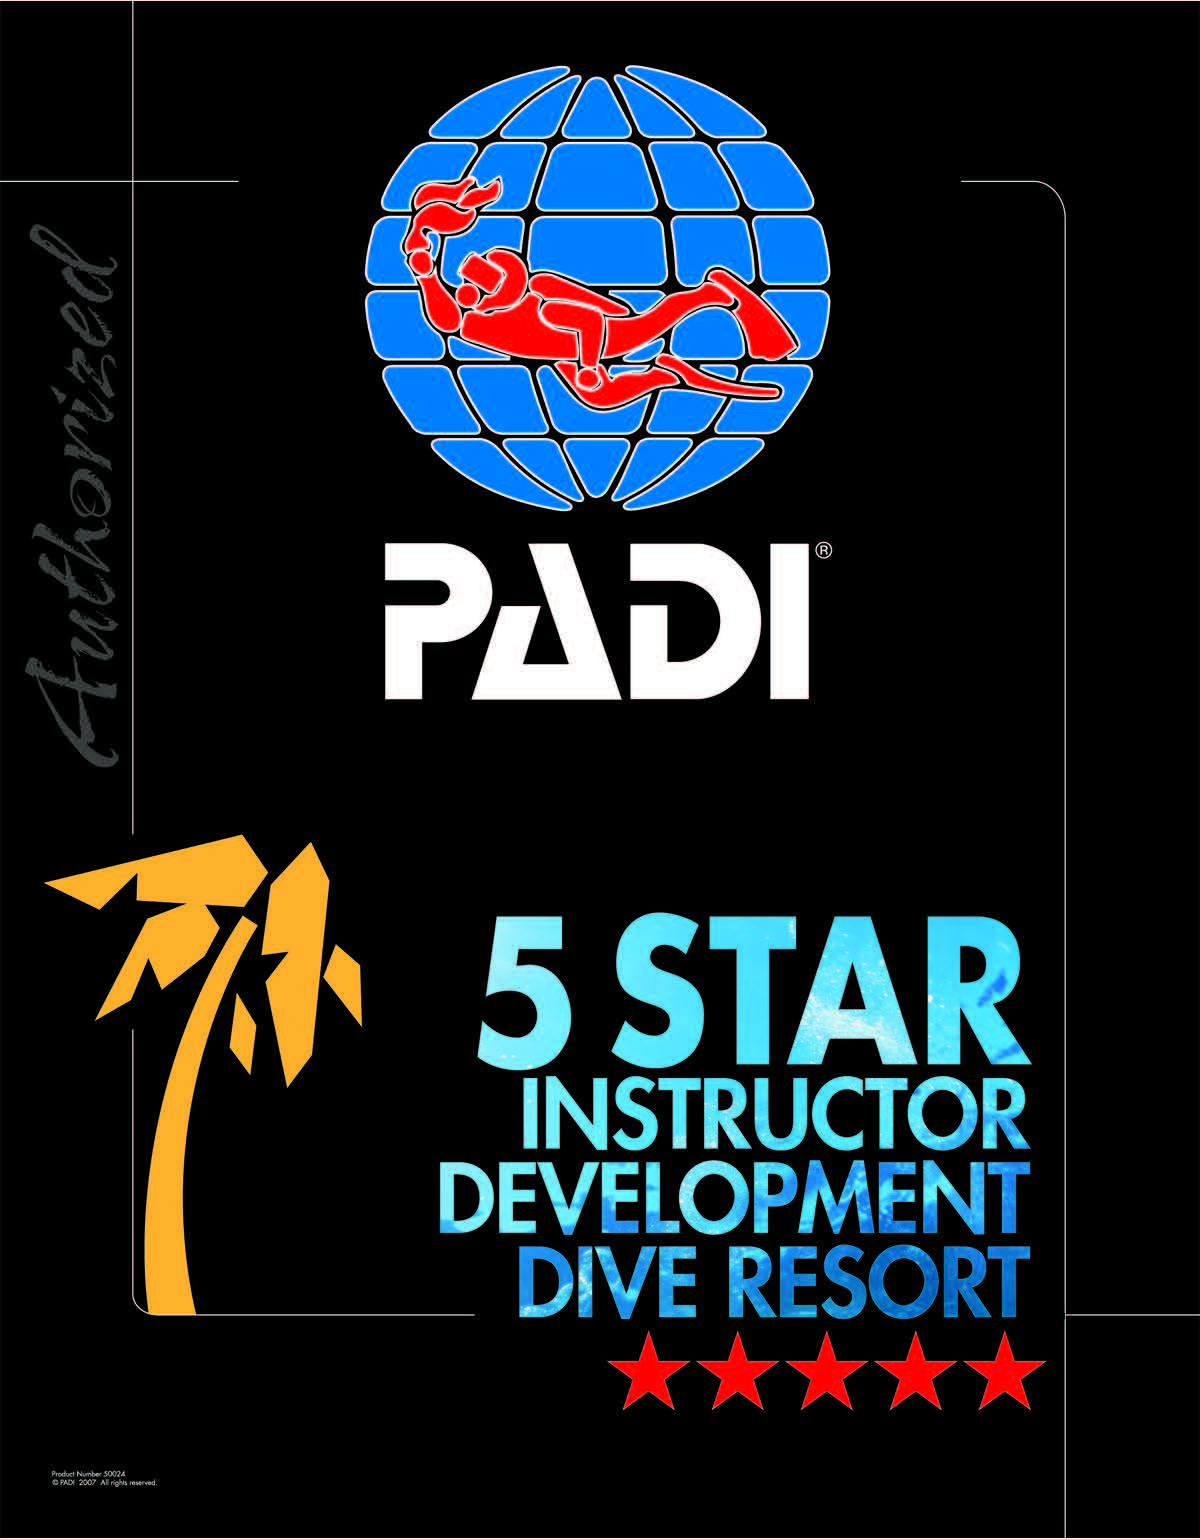 Another great upgrade for Strýtan Divecenter!